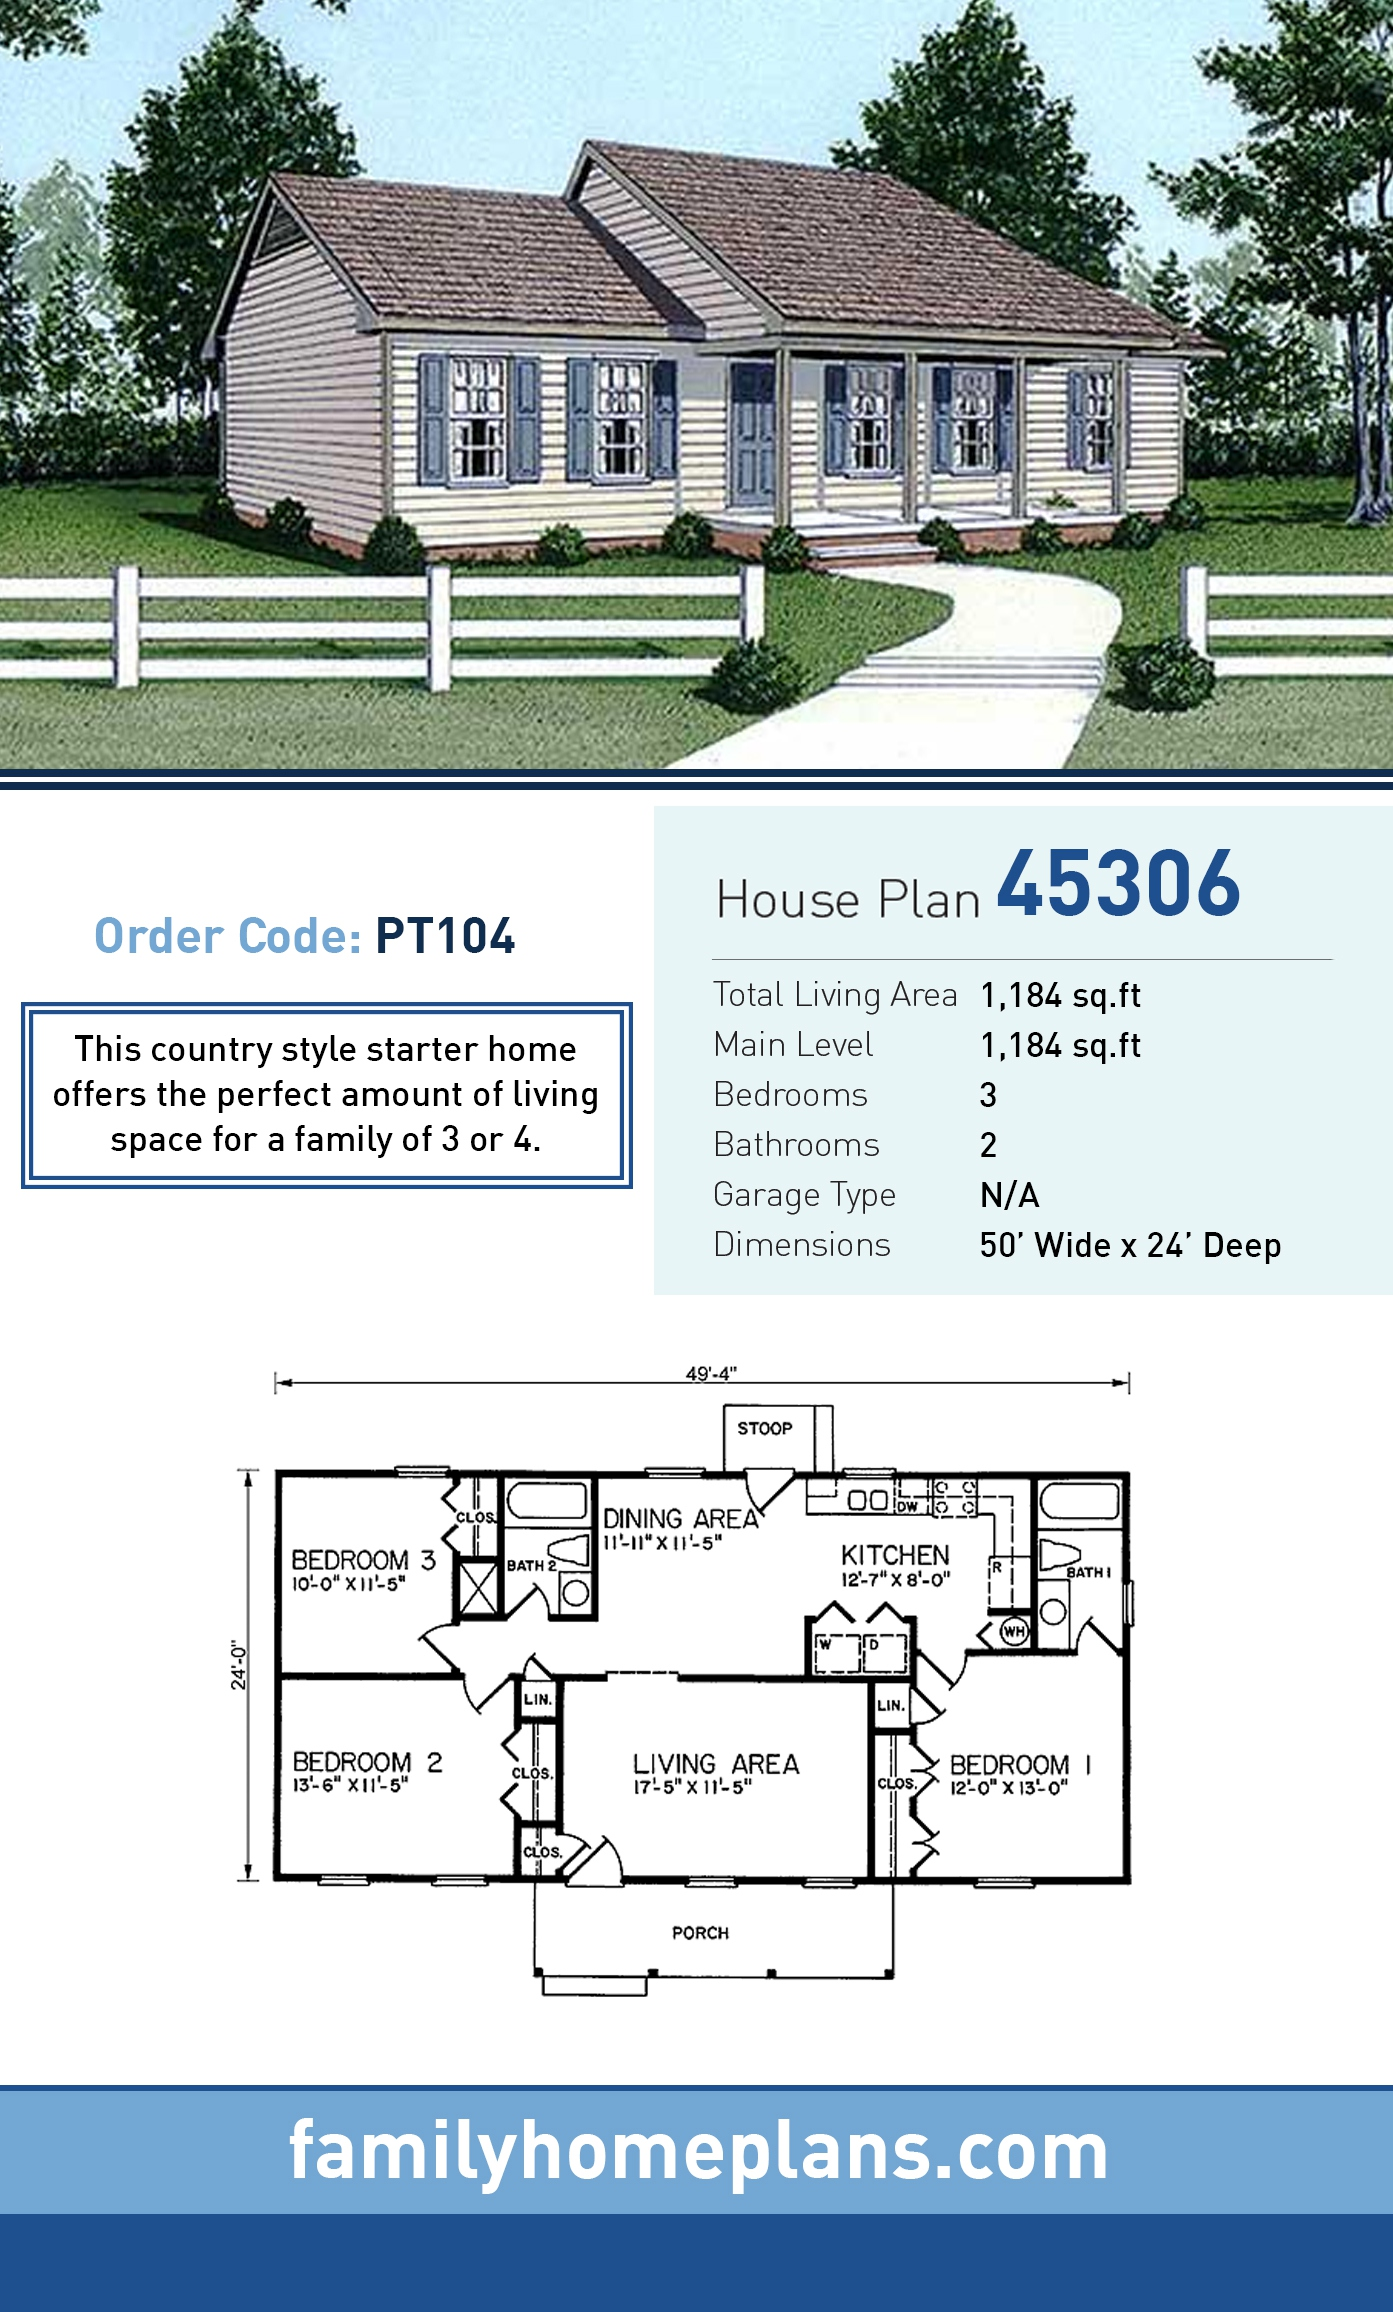 Ranch House Plan 45306 with 3 Beds, 2 Baths